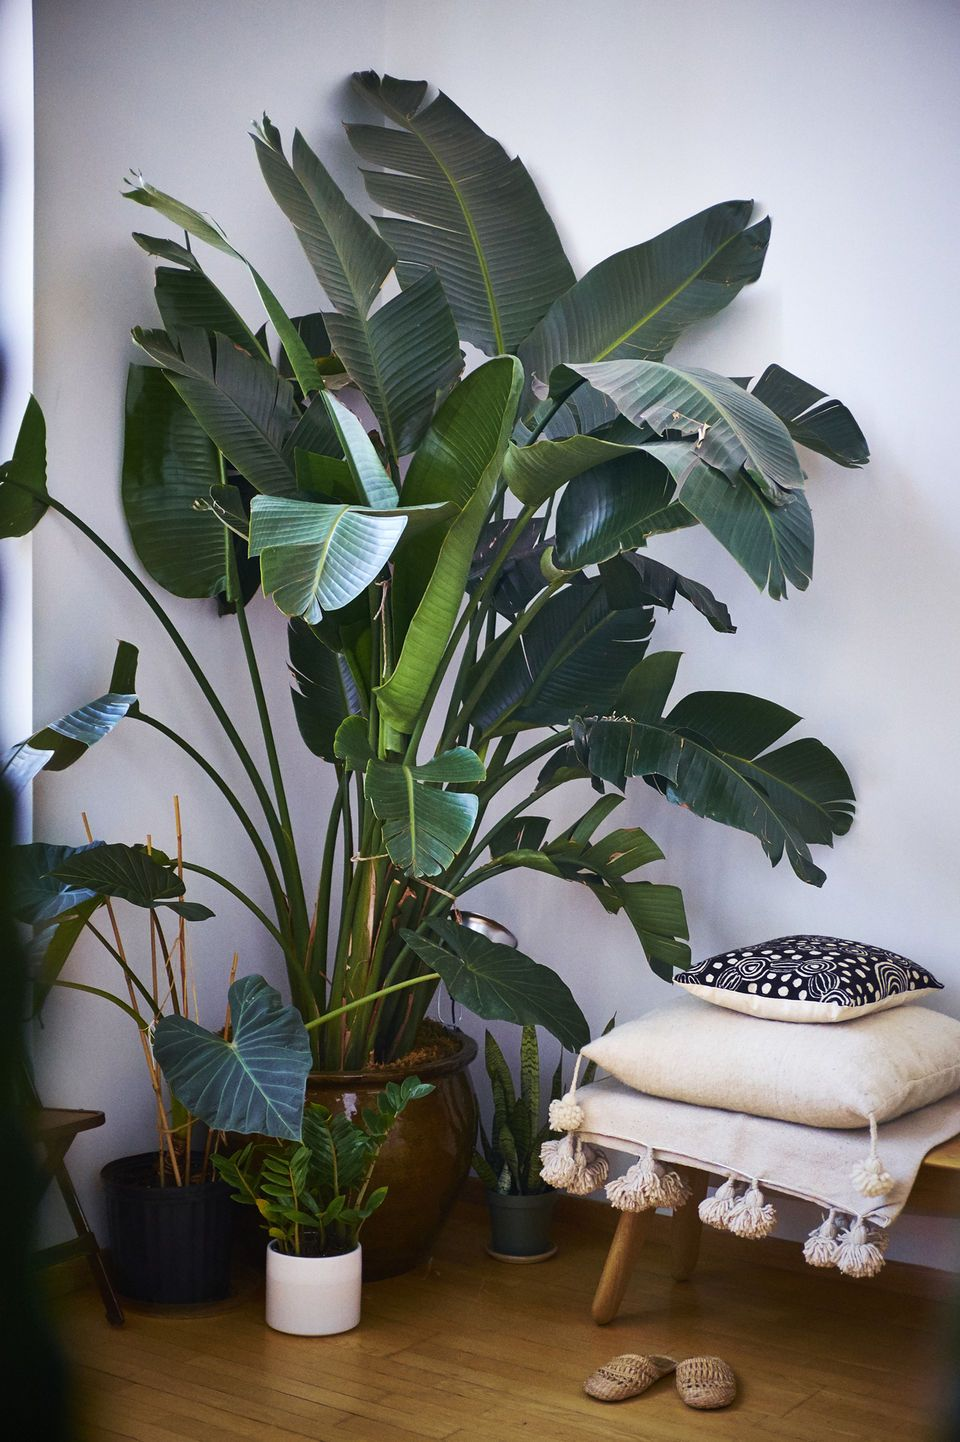 Best Kitchen Gallery: The Best Meditation Chairs For A Silent Mind Plants Woman And Palm of Large Green Leaf House Plants on rachelxblog.com